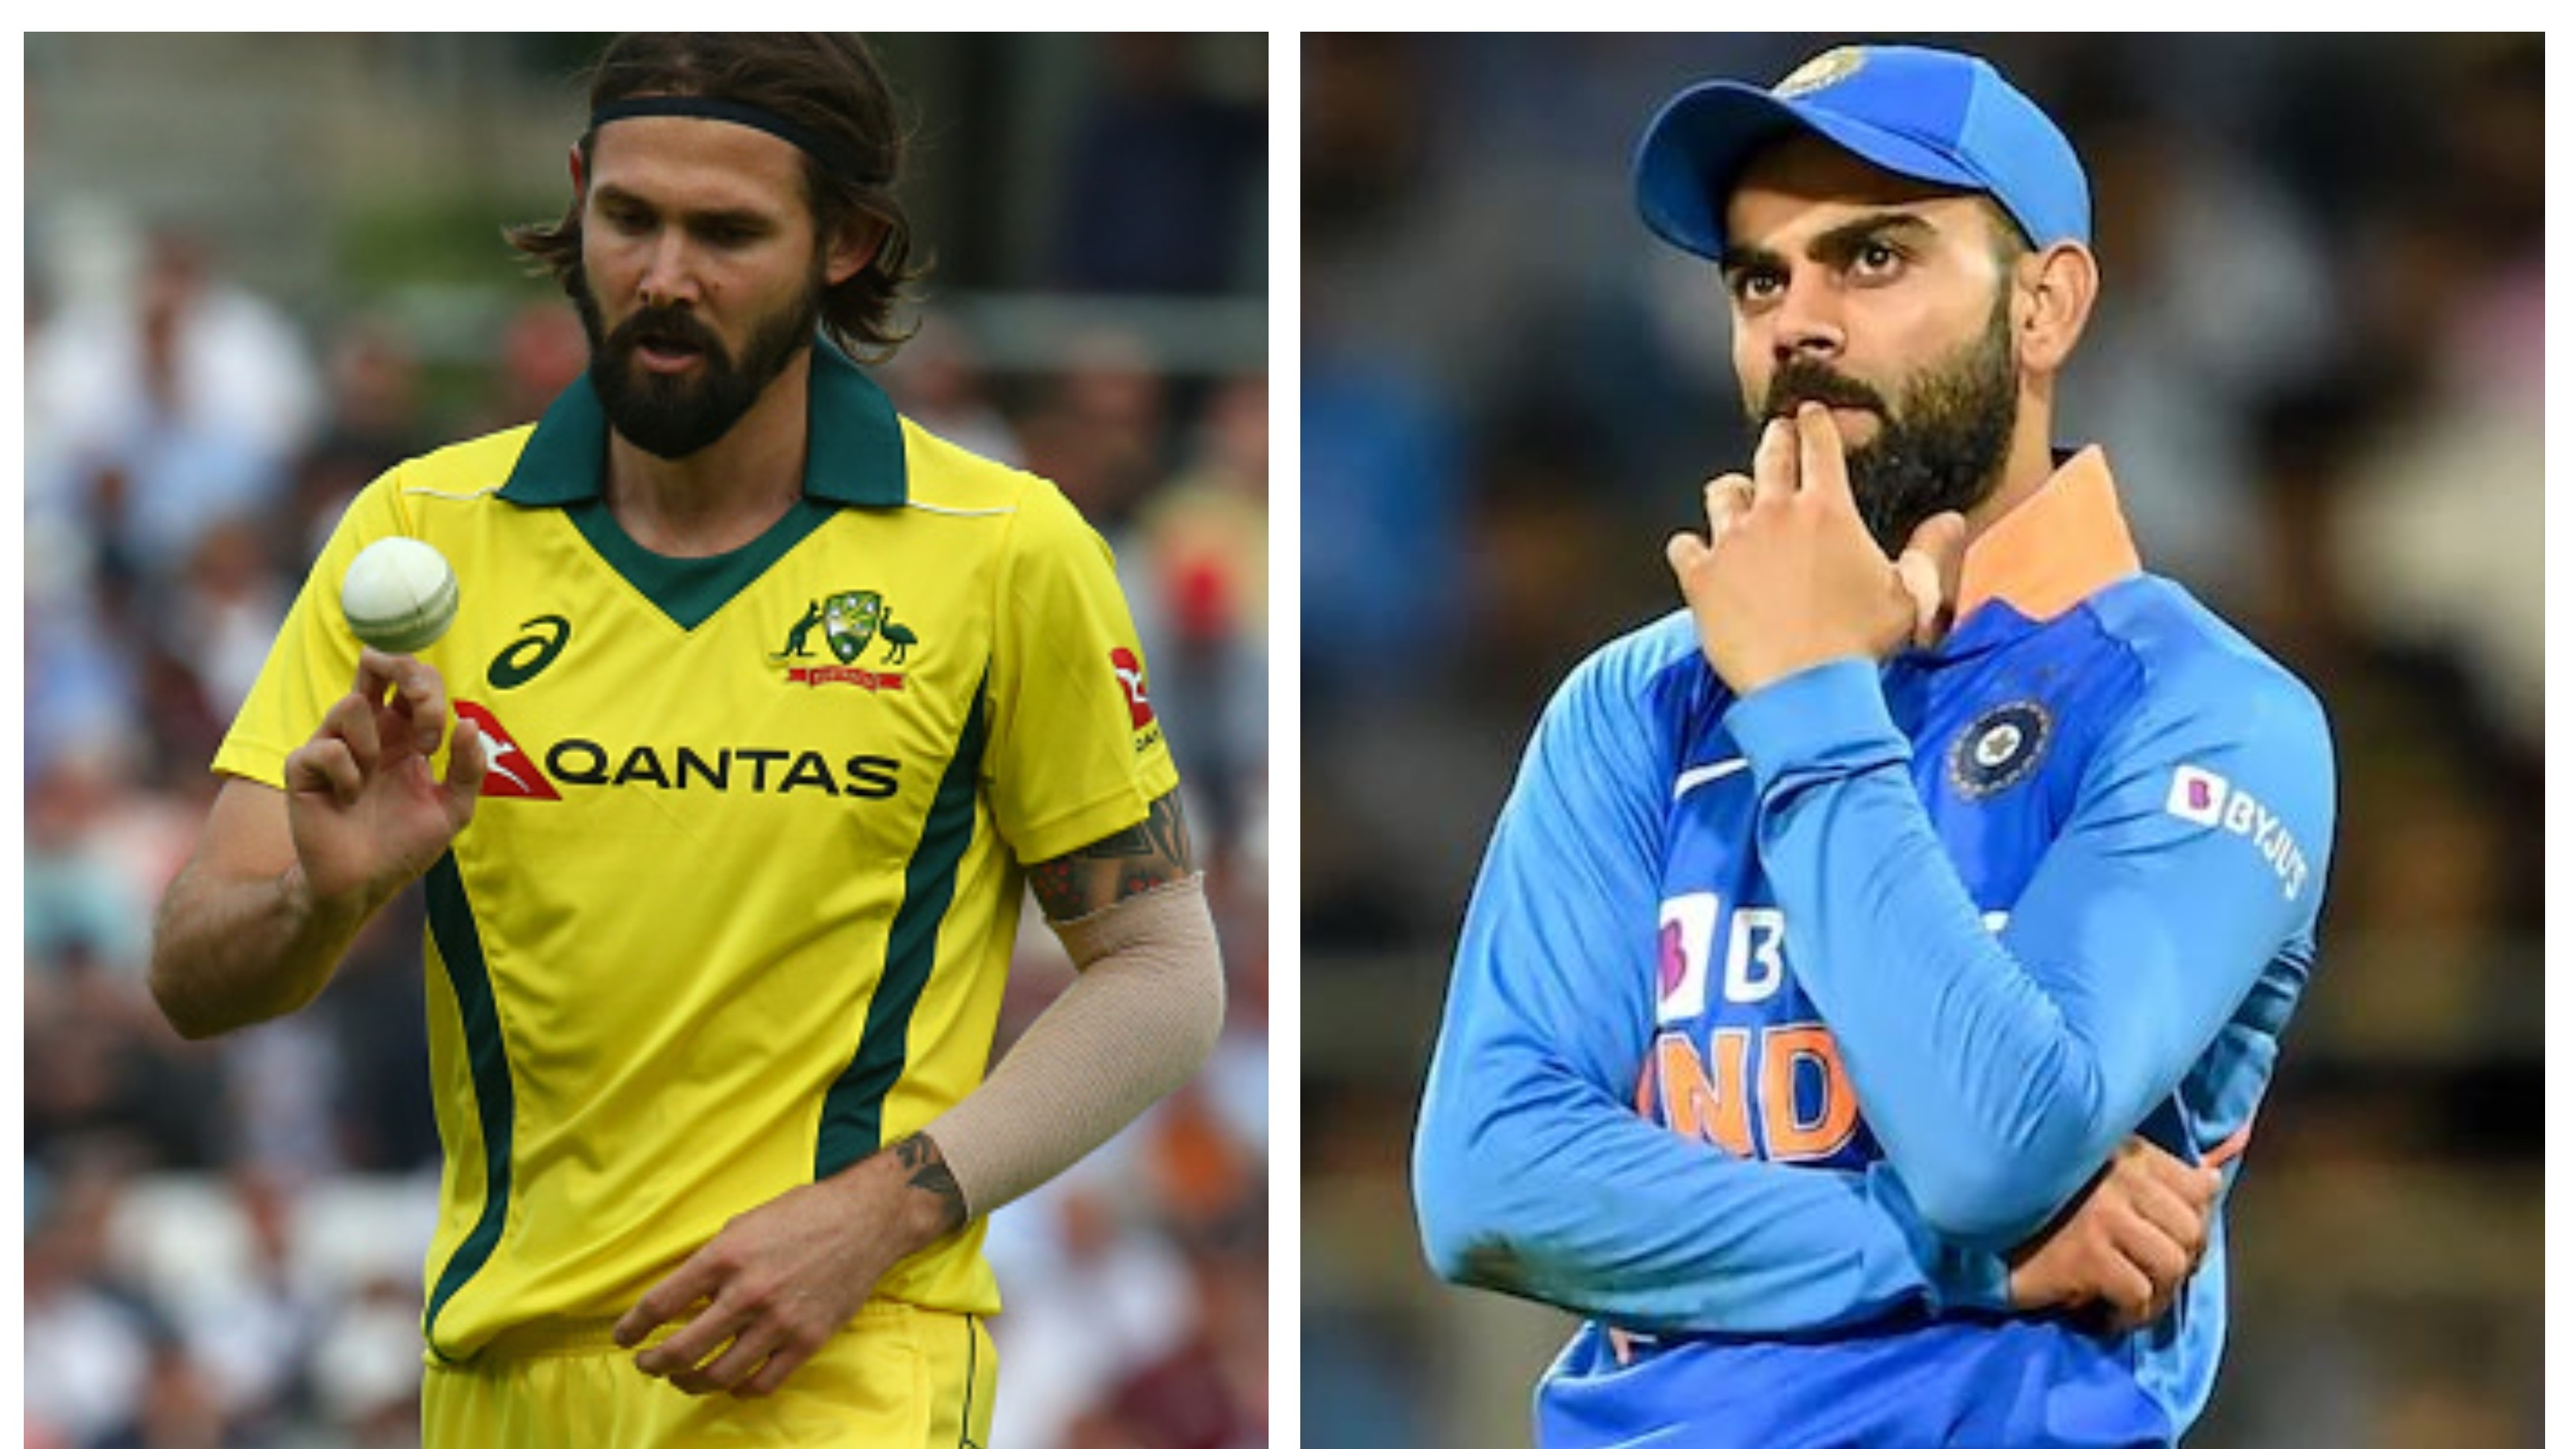 IND v AUS 2020: Richardson reveals tips received from fellow vegan Virat Kohli